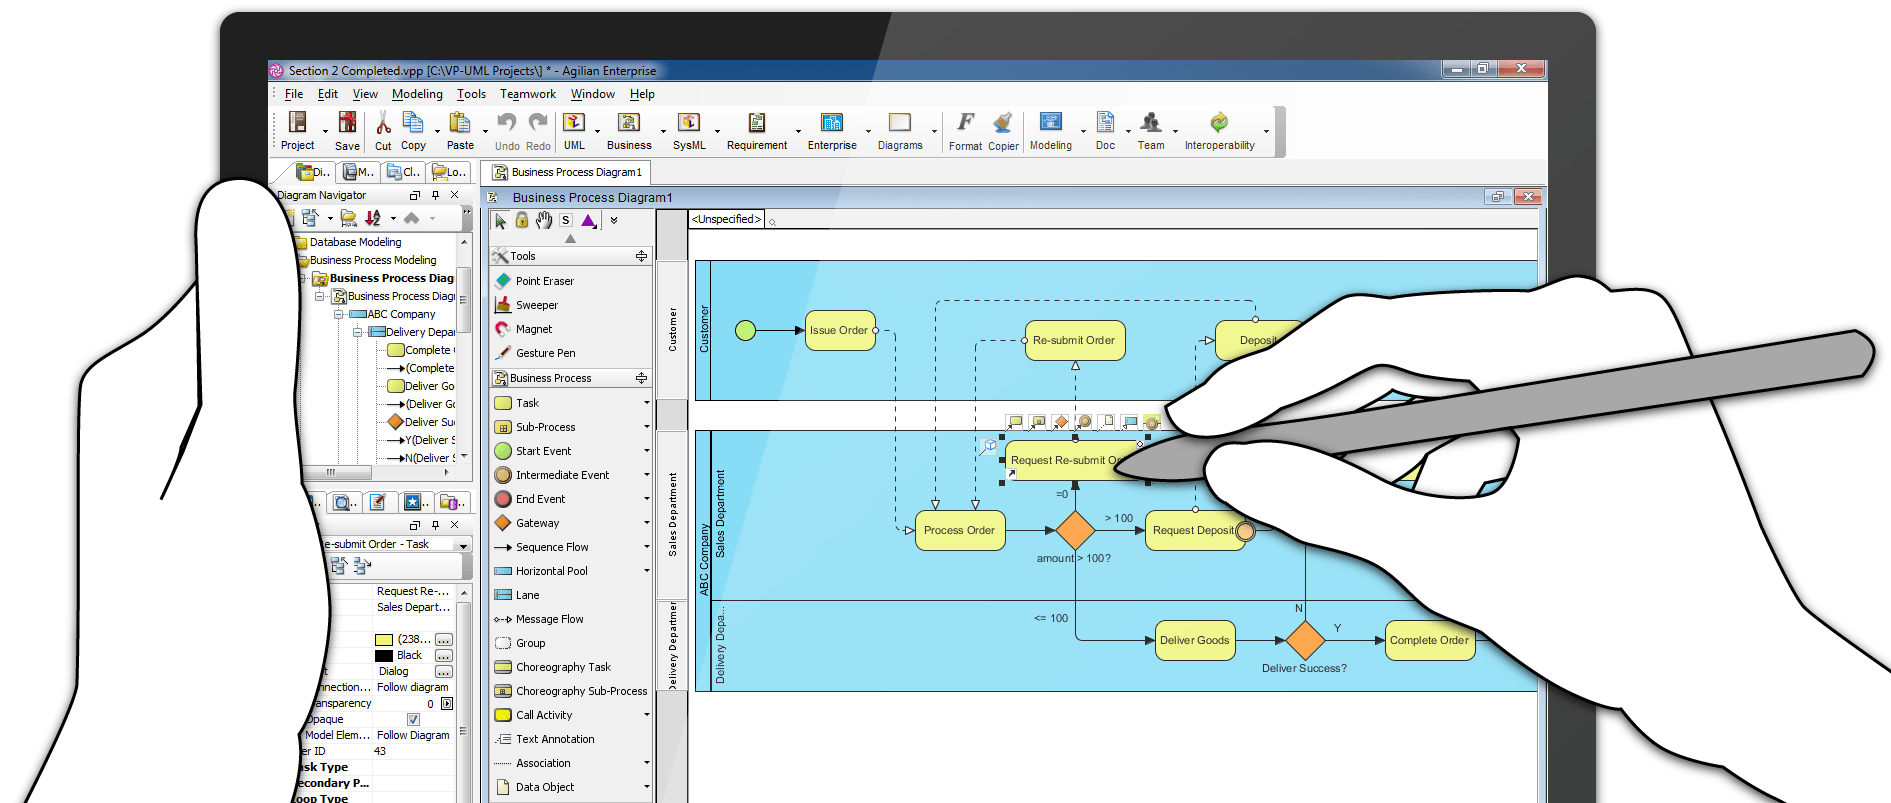 https://i1.wp.com/knowhow.visual-paradigm.com/know-how_files/2012/08/00-win-tablet-ag.png